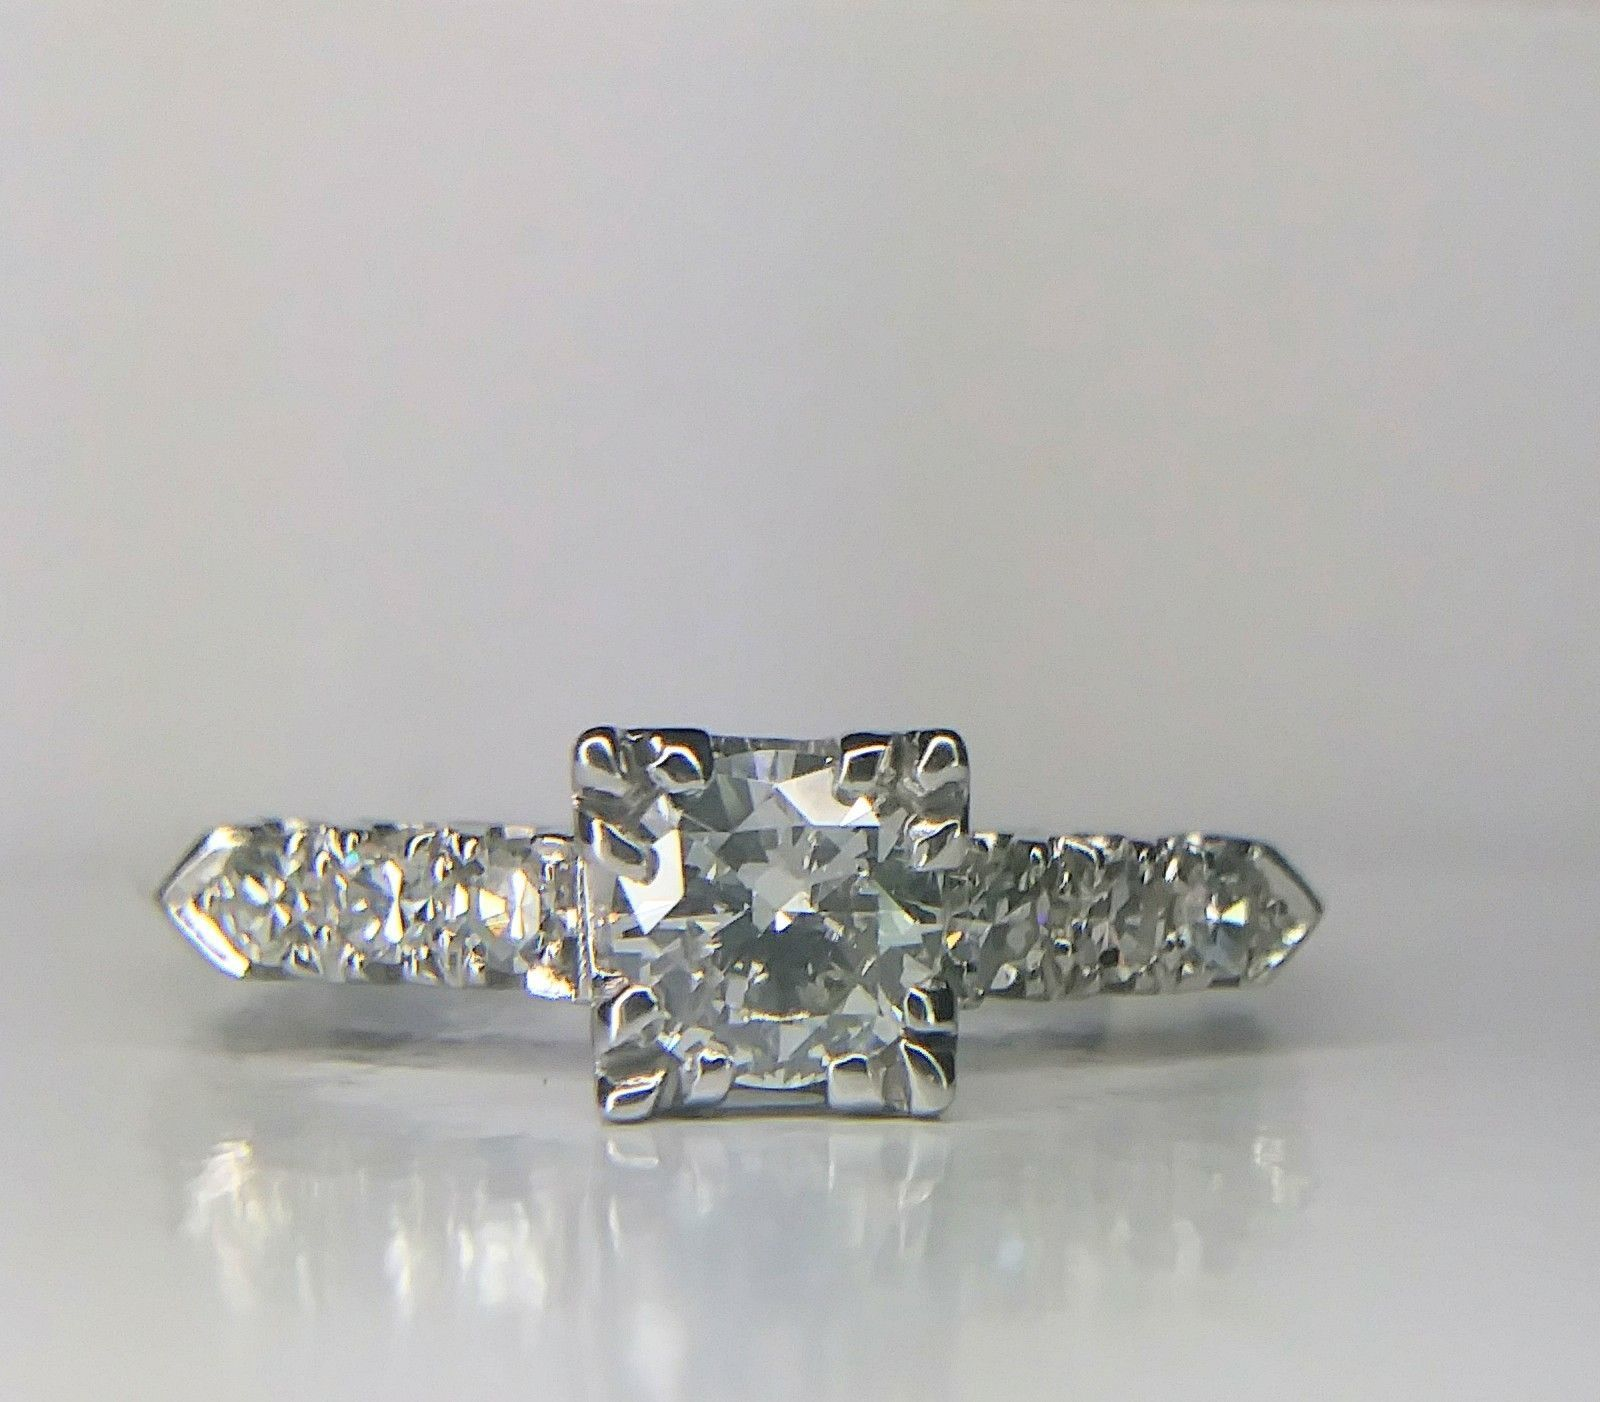 diamond qkfyqqk art engagement popular carat marquise cut deco promise wedding ring